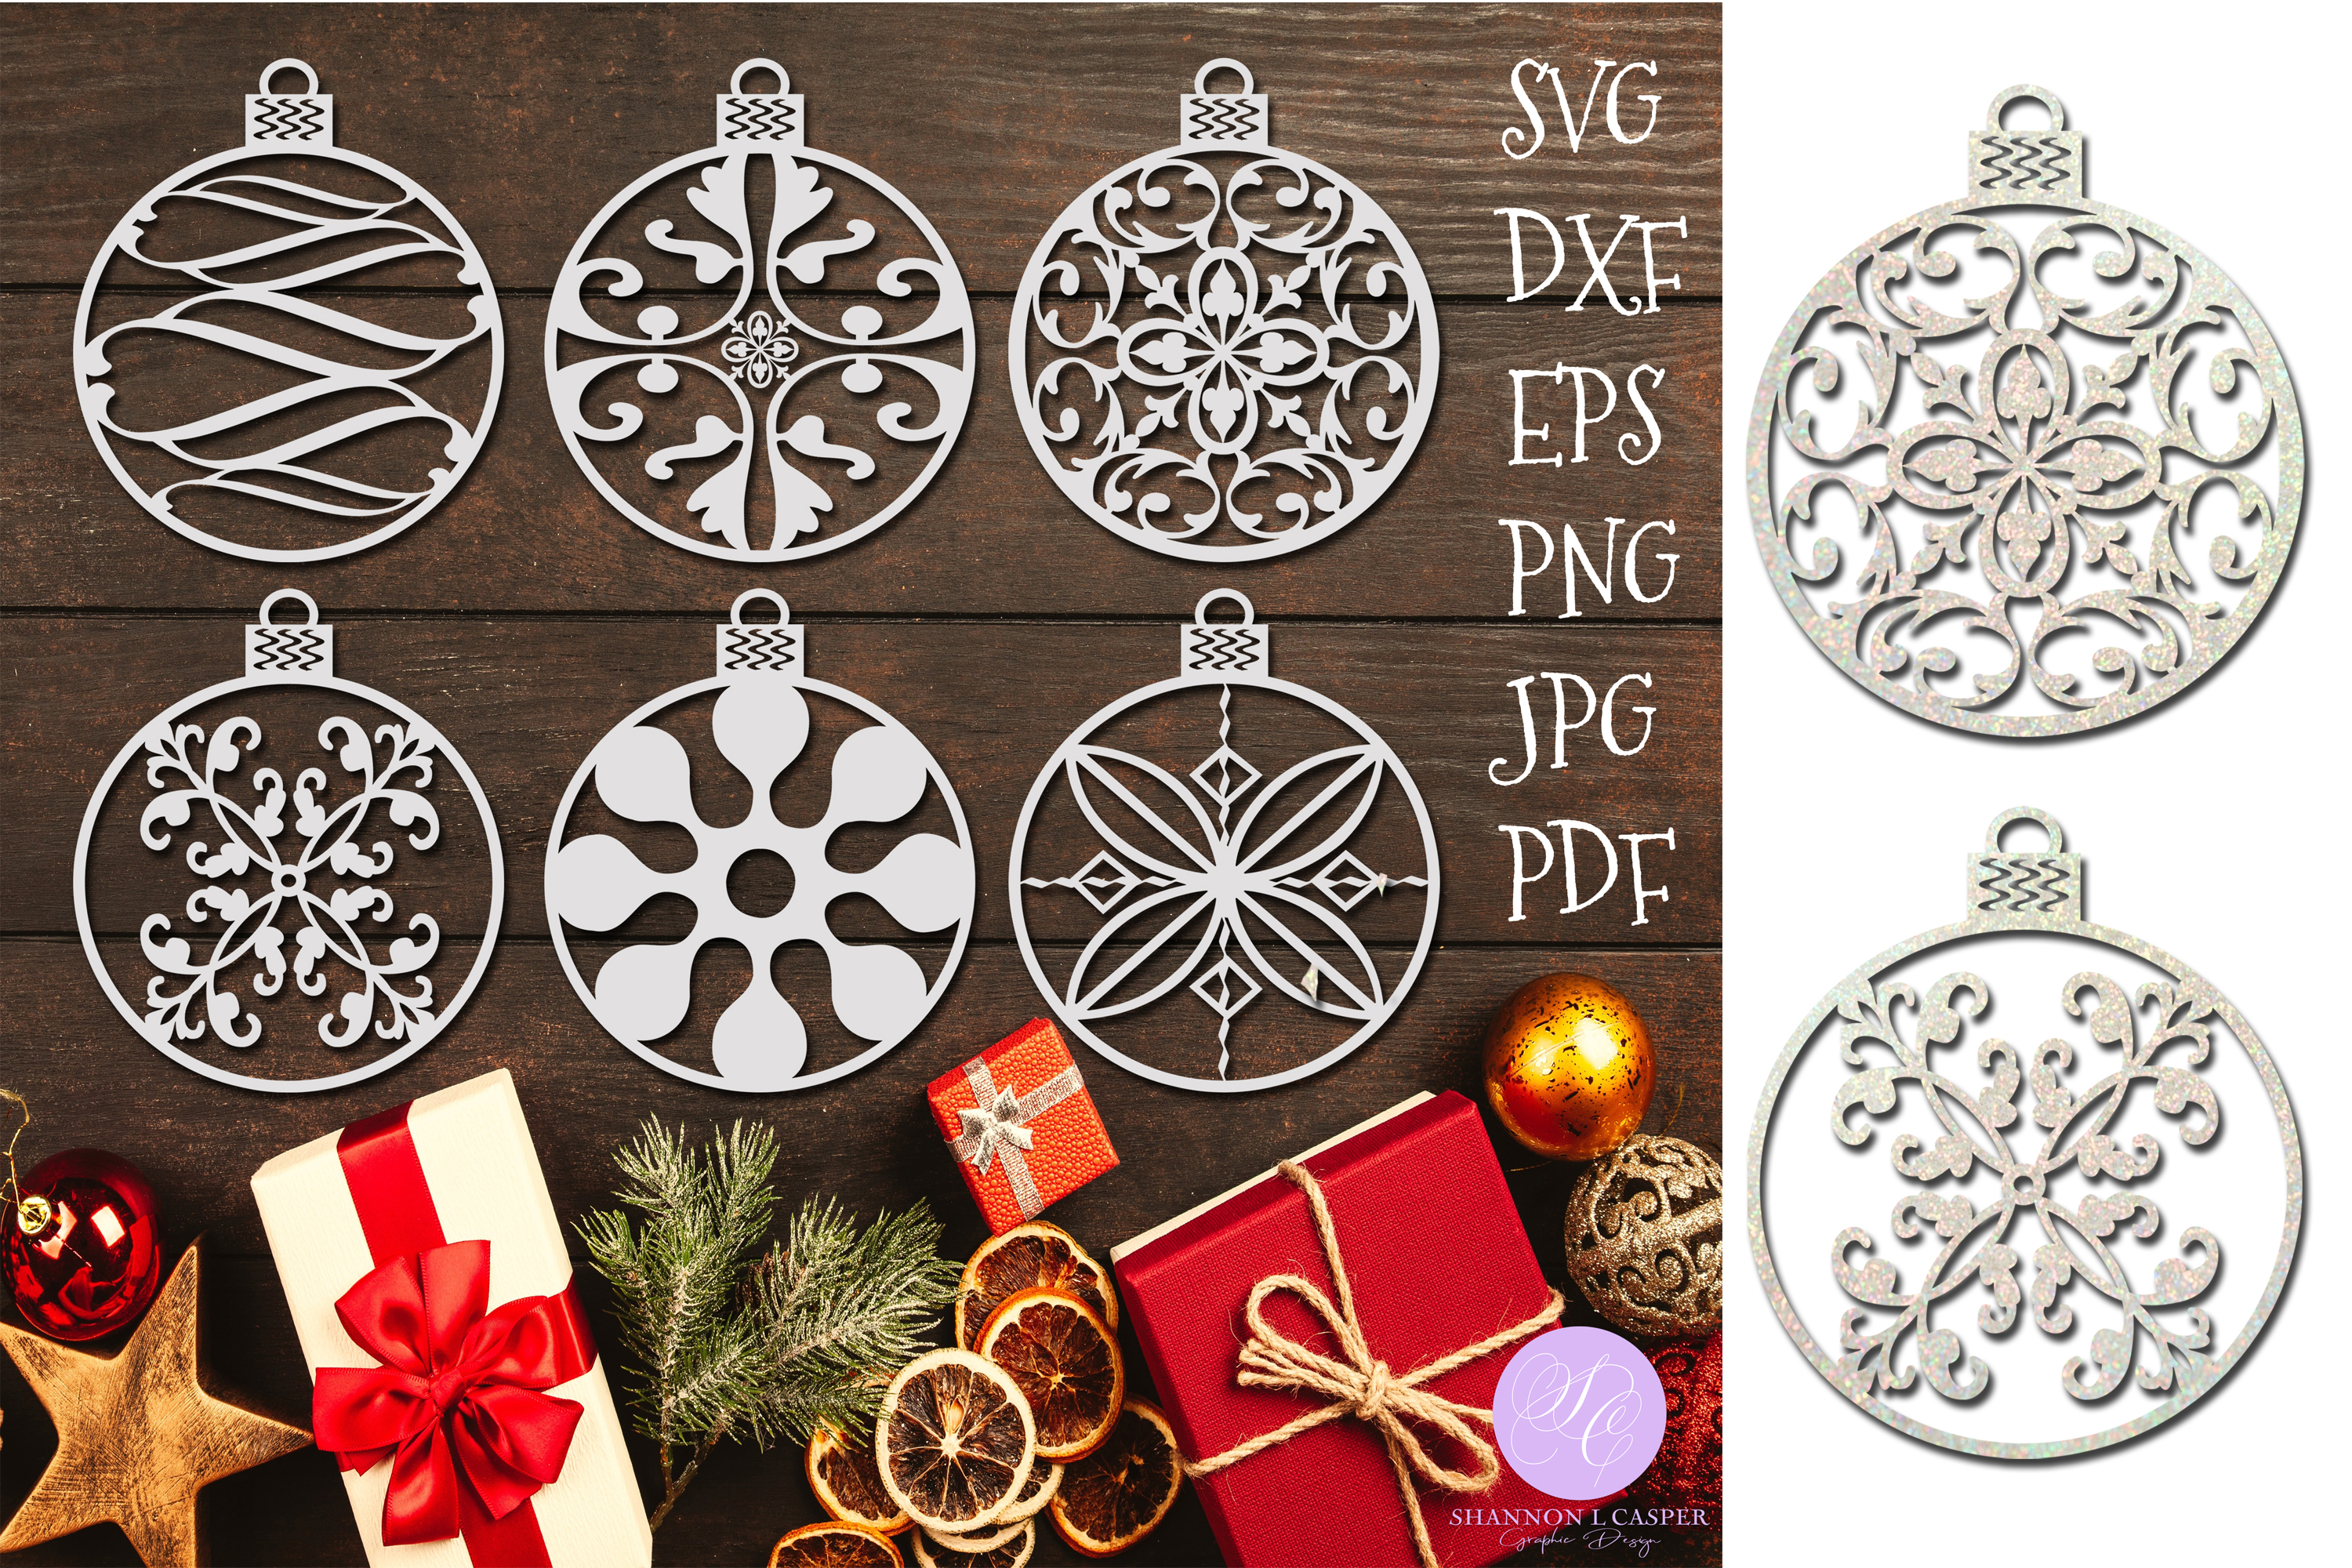 Download Free Christmas Ornament Bundle Graphic By Shannon Casper Creative for Cricut Explore, Silhouette and other cutting machines.